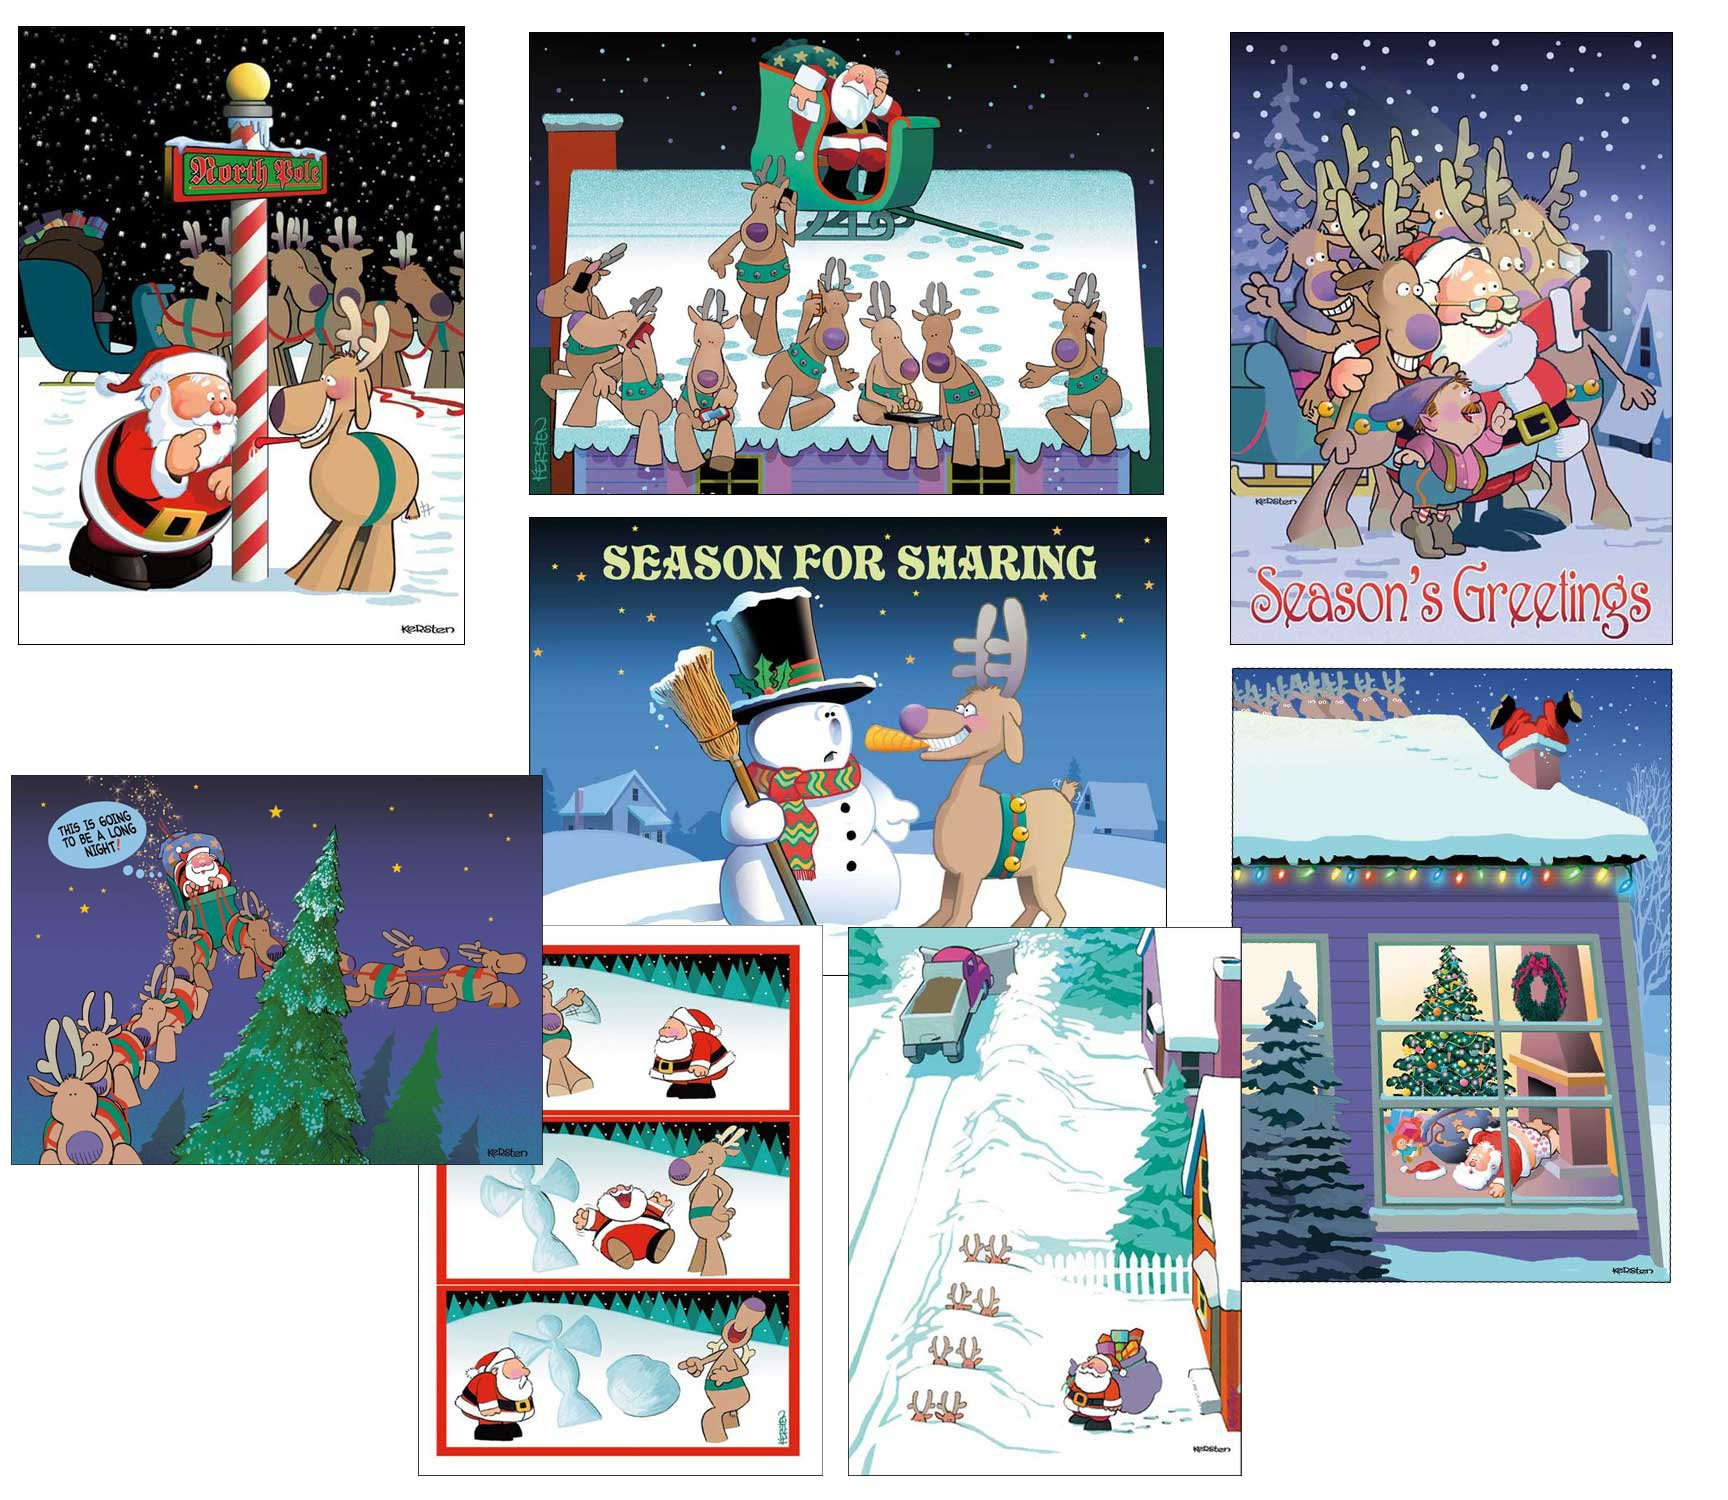 Amazon.com: Snow Angels Christmas Cards - Humorous 18 Boxed ...